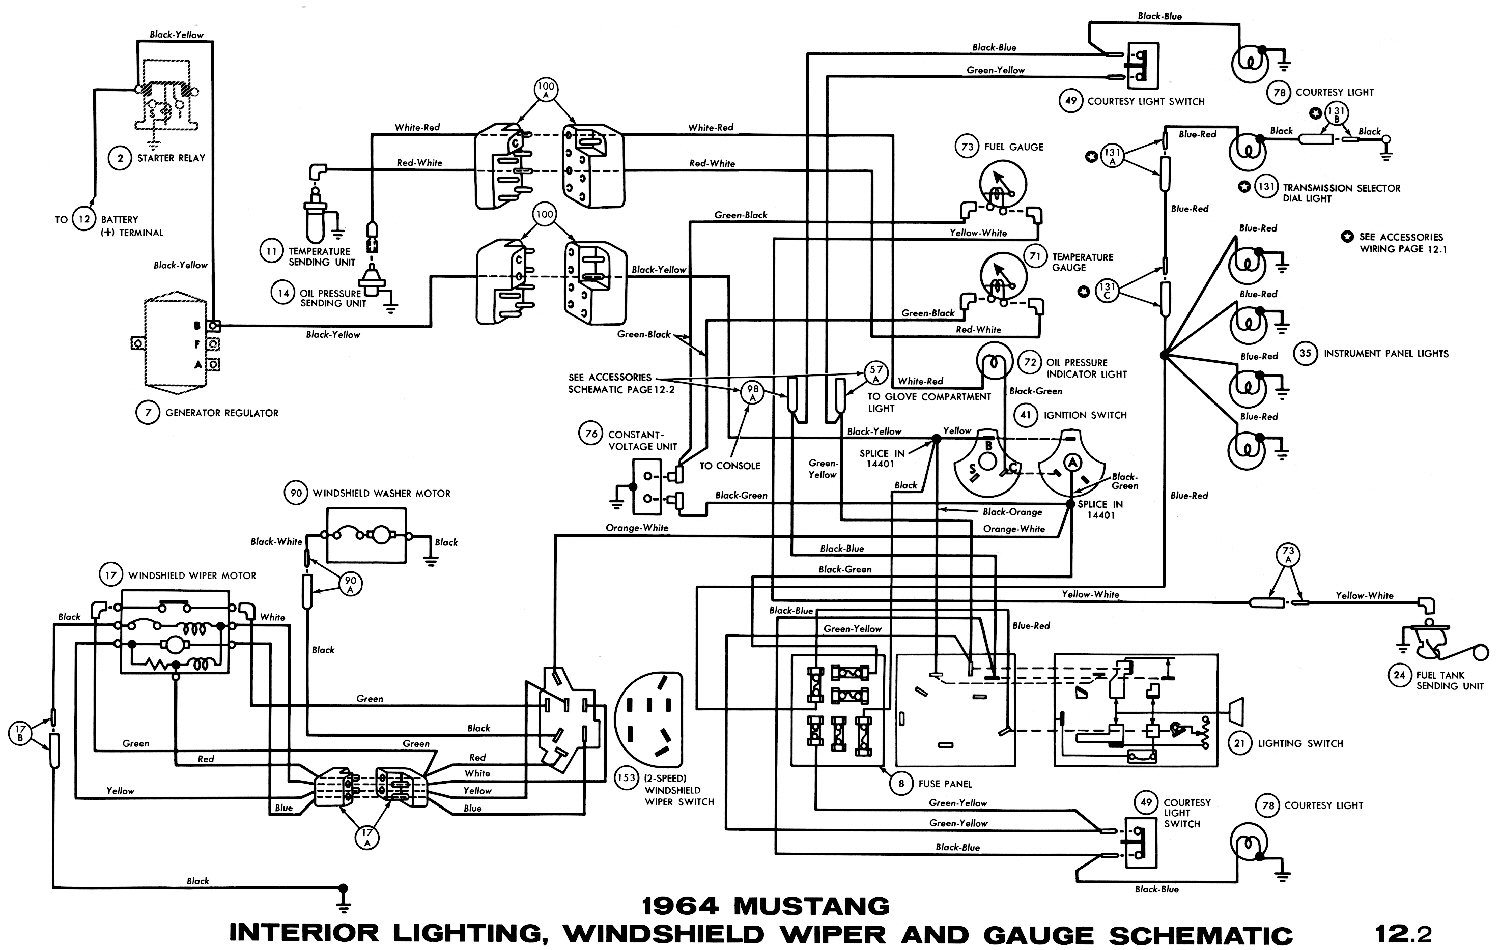 1964 Mustang Wiring Diagrams Average Joe Restoration Light Switch Schematic For Oil Pressure